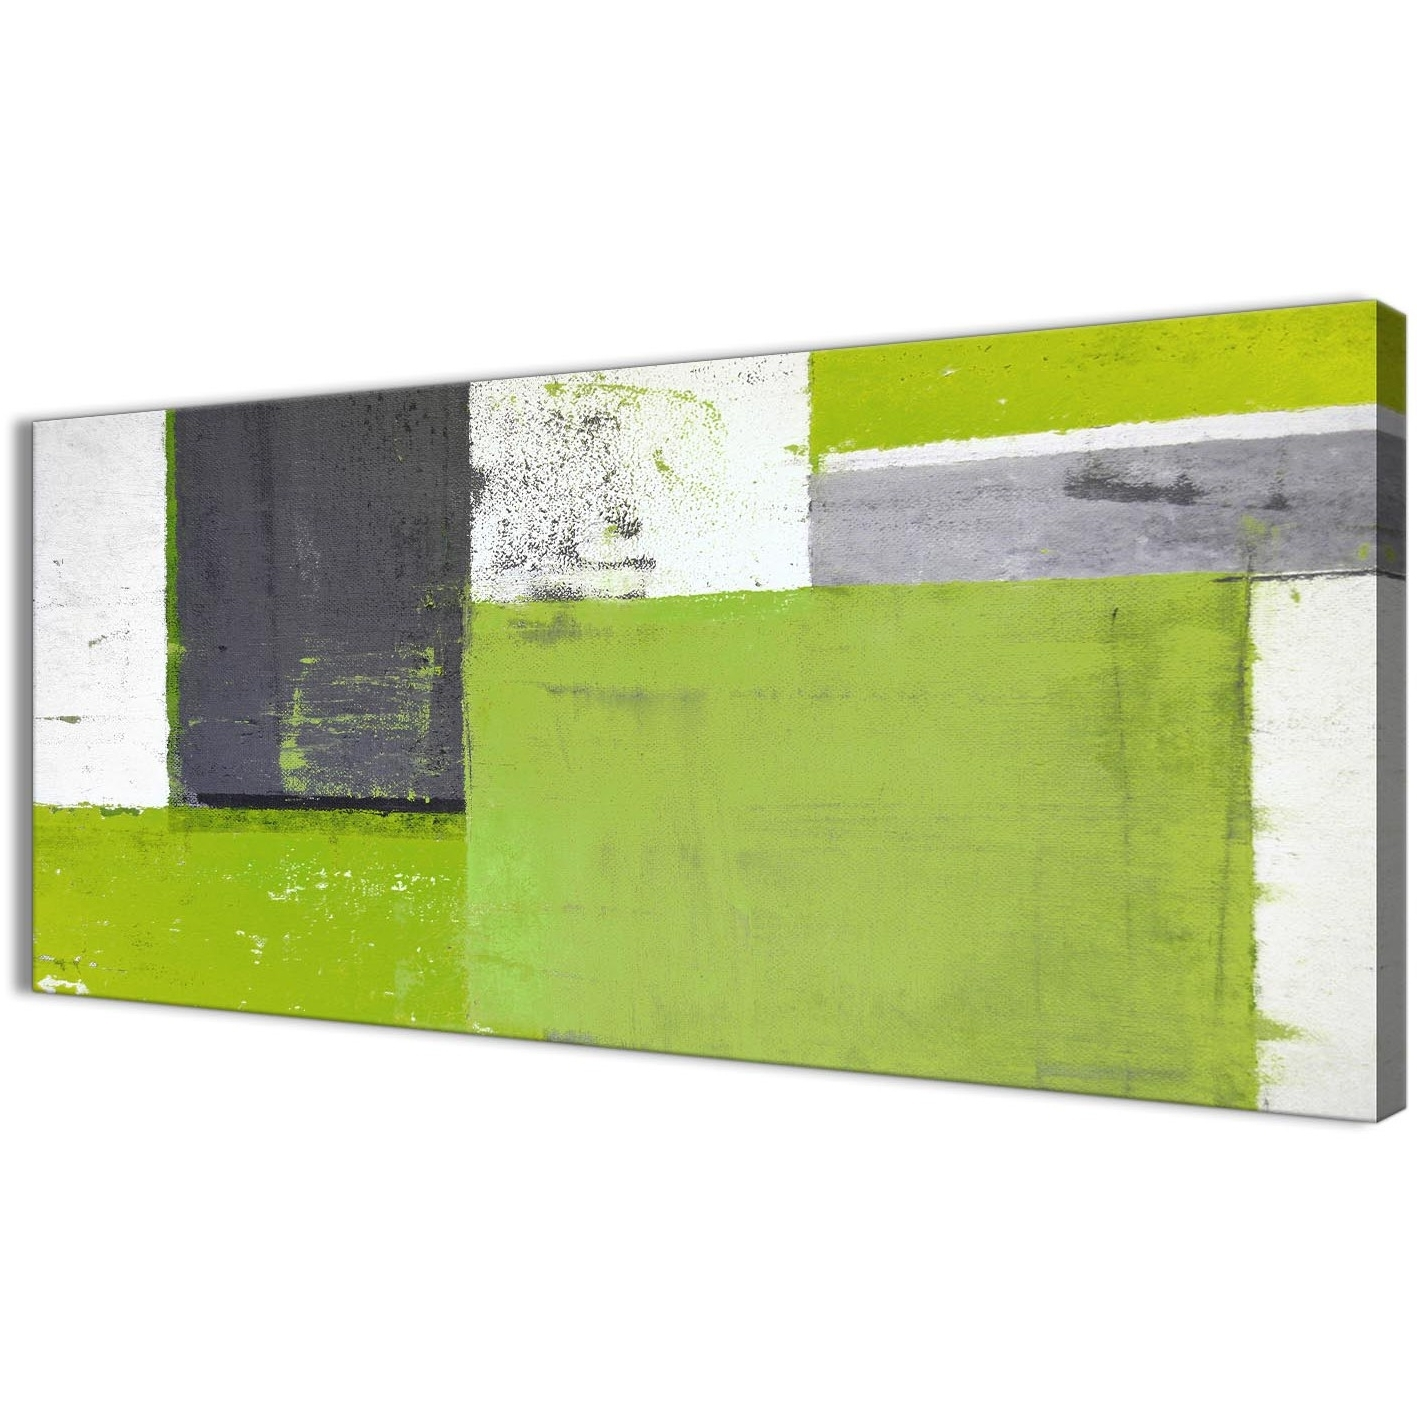 2017 Lime Green Grey Abstract Painting Canvas Wall Art Print – Modern In Green Abstract Wall Art (View 1 of 15)